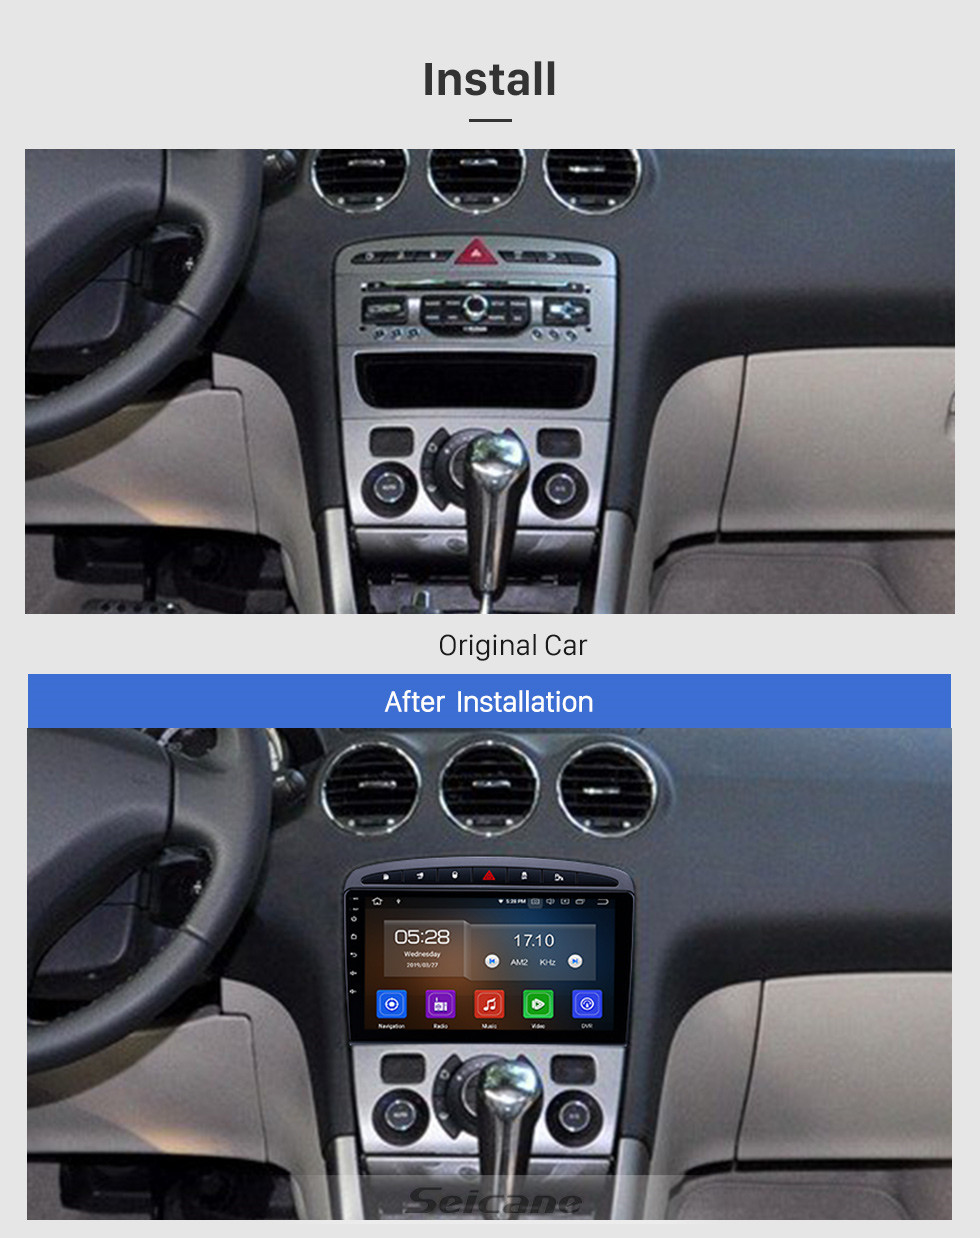 Seicane 9 inch Android 10.0 HD Touchscreen Radio for 2010 2011 Peugeot 308 408 with GPS Navi USB WIFI Bluetooth music AUX support RDS DVD Player 4G TPMS OBD